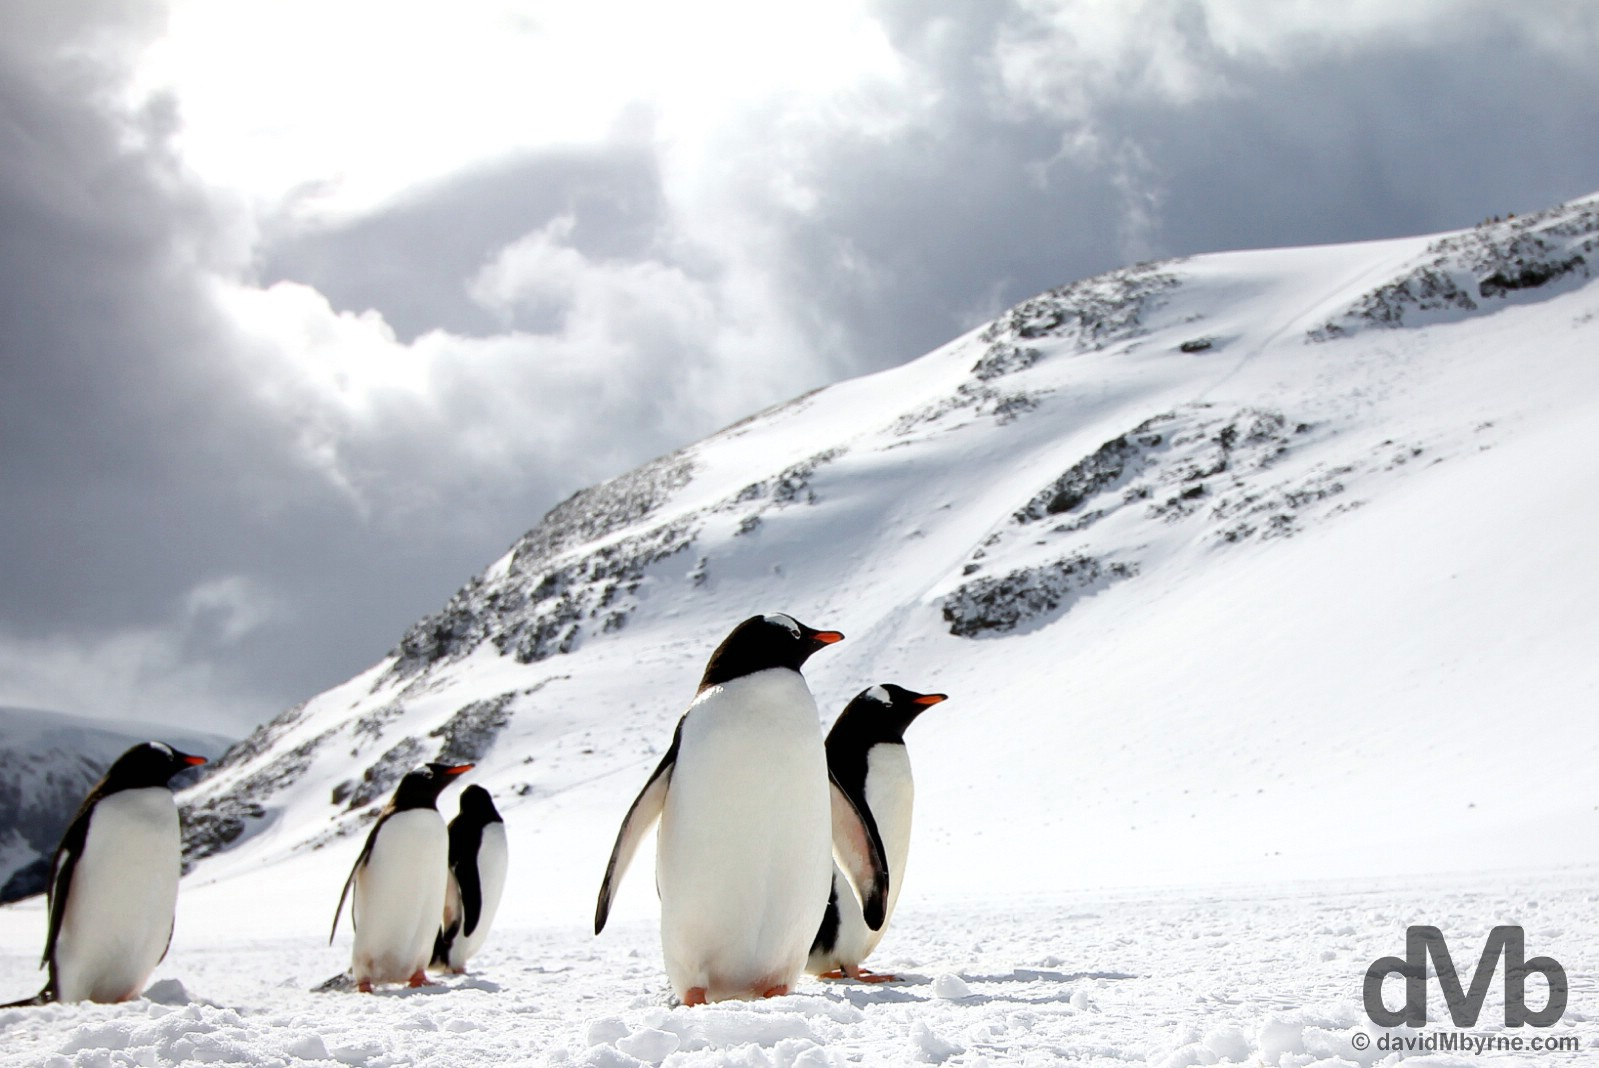 On the Penguin Highway on Cuverville Island, Antarctic Peninsula. December 1, 2015.